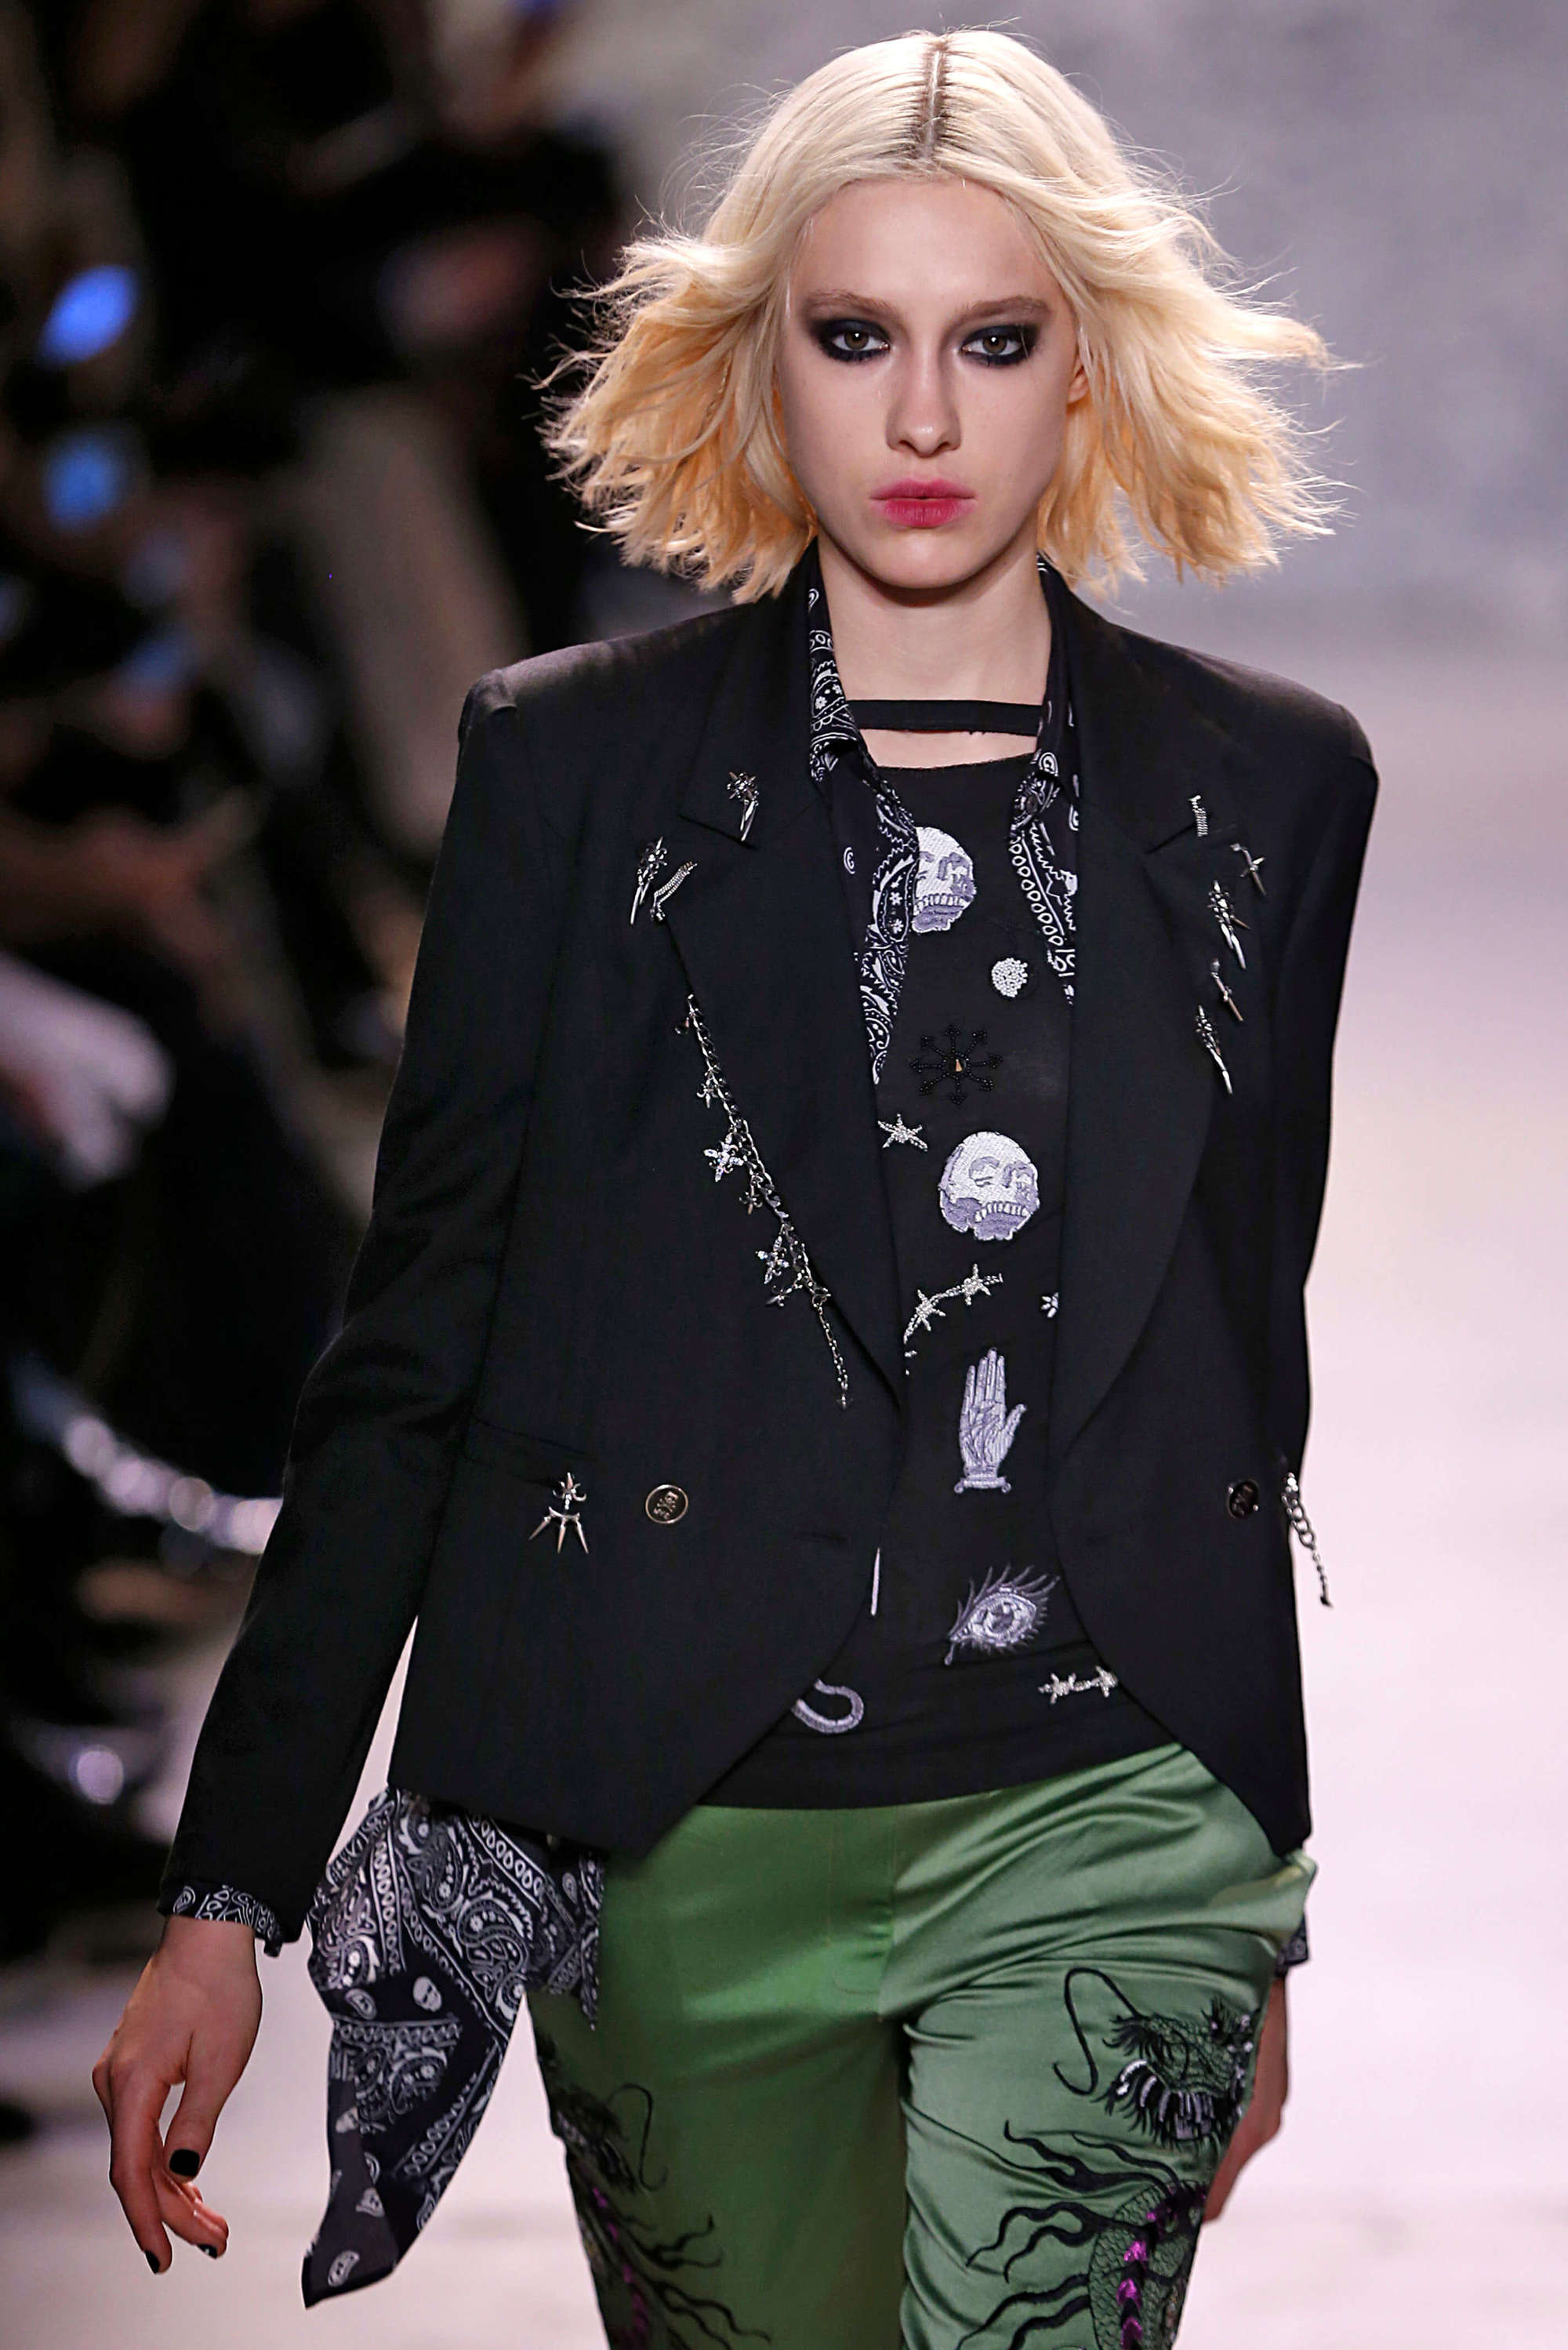 Retro Hair Revival 90s Grunge Hairstyles From Nyfw